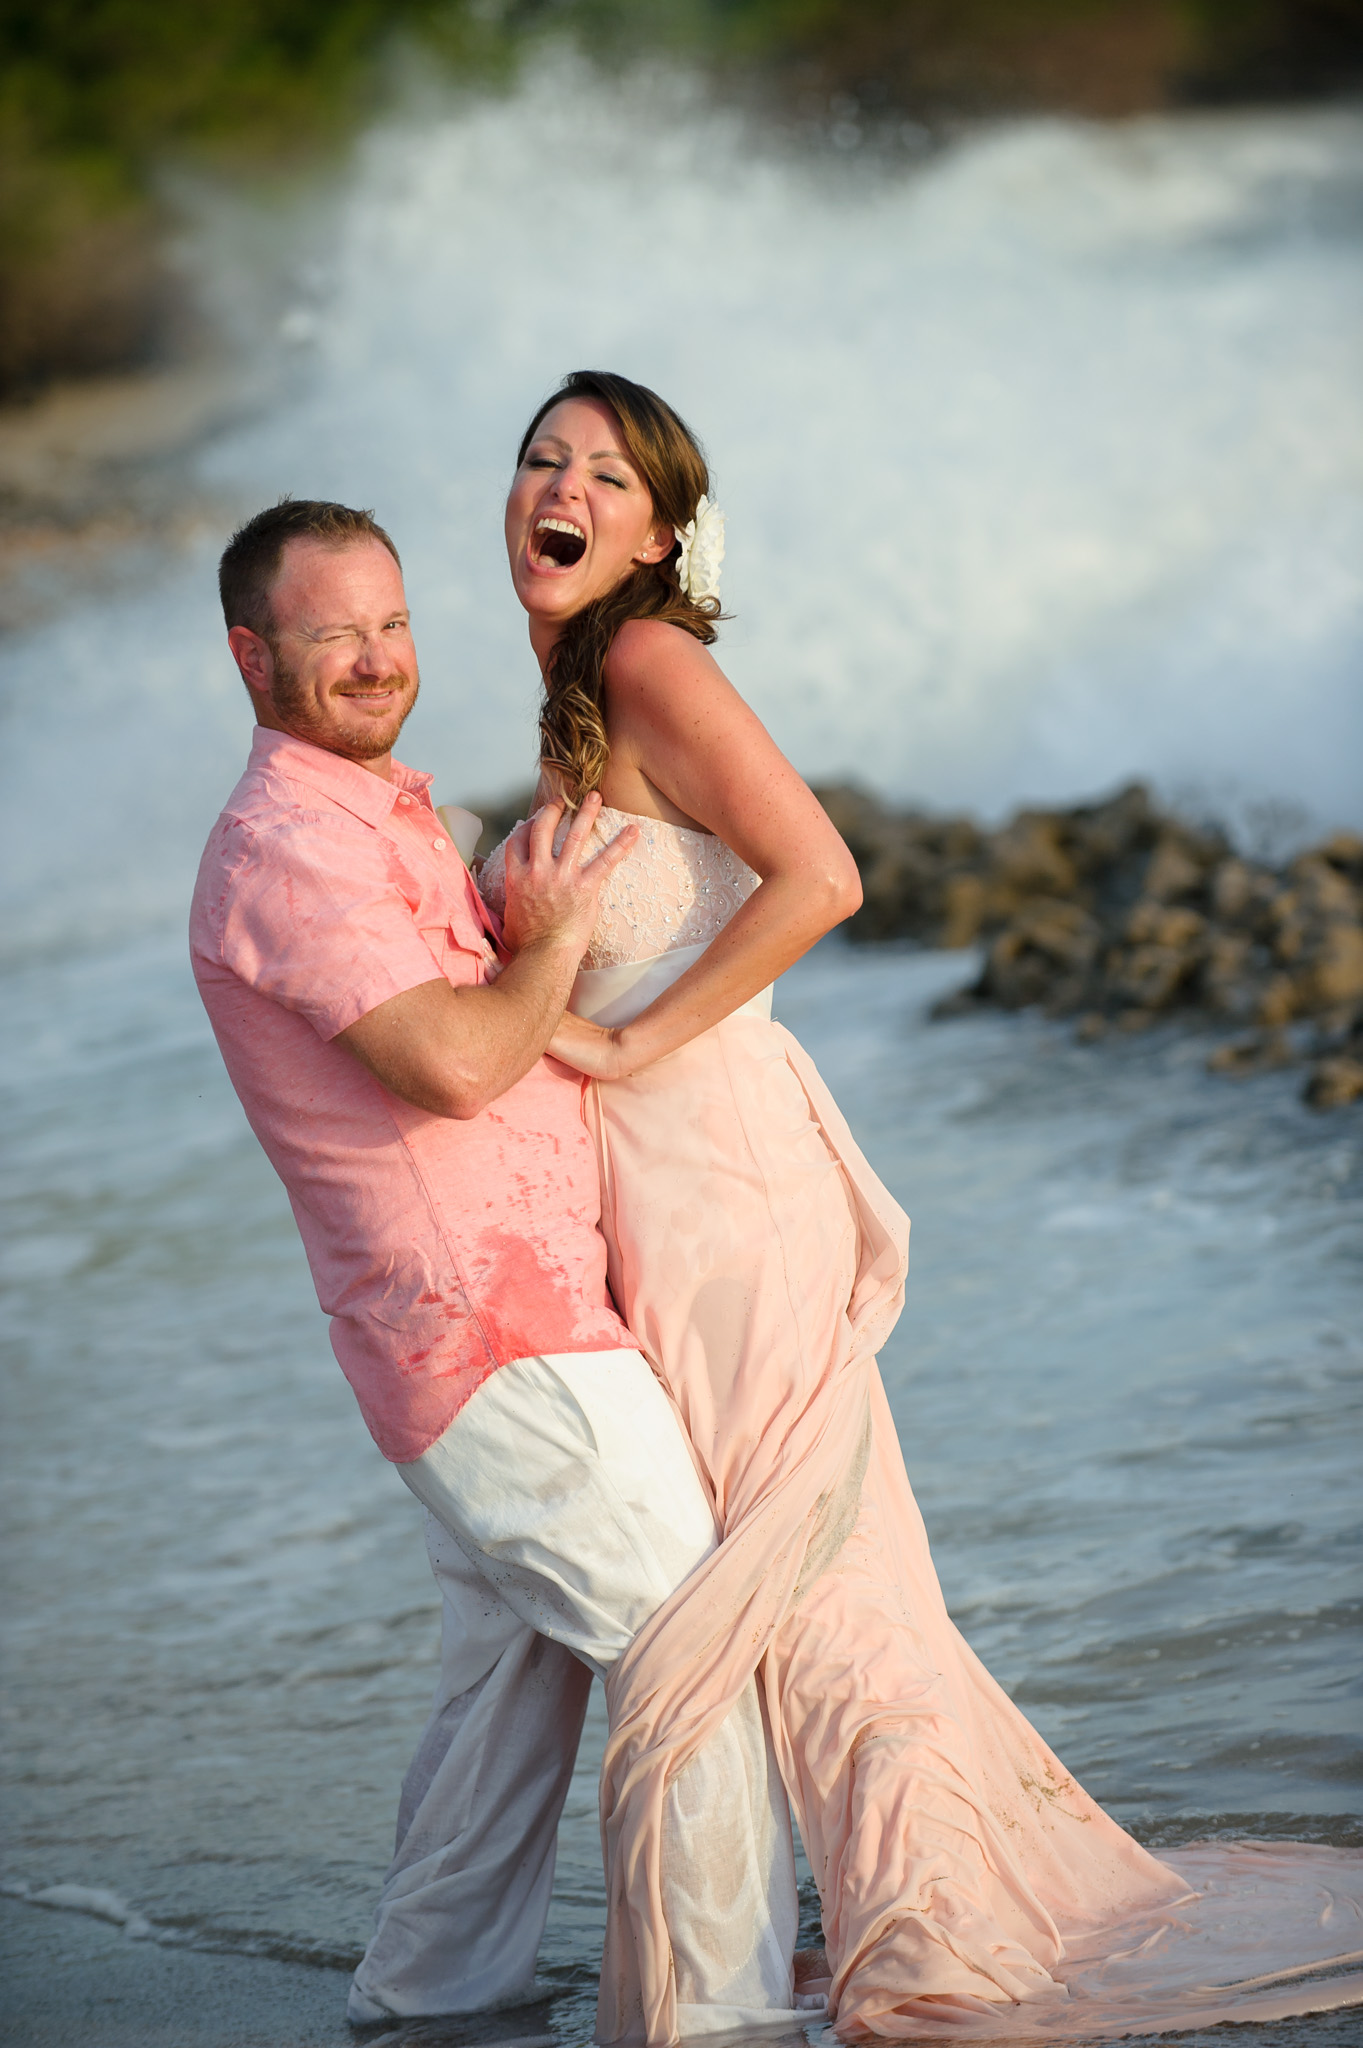 Planning on Eloping in Costa Rica